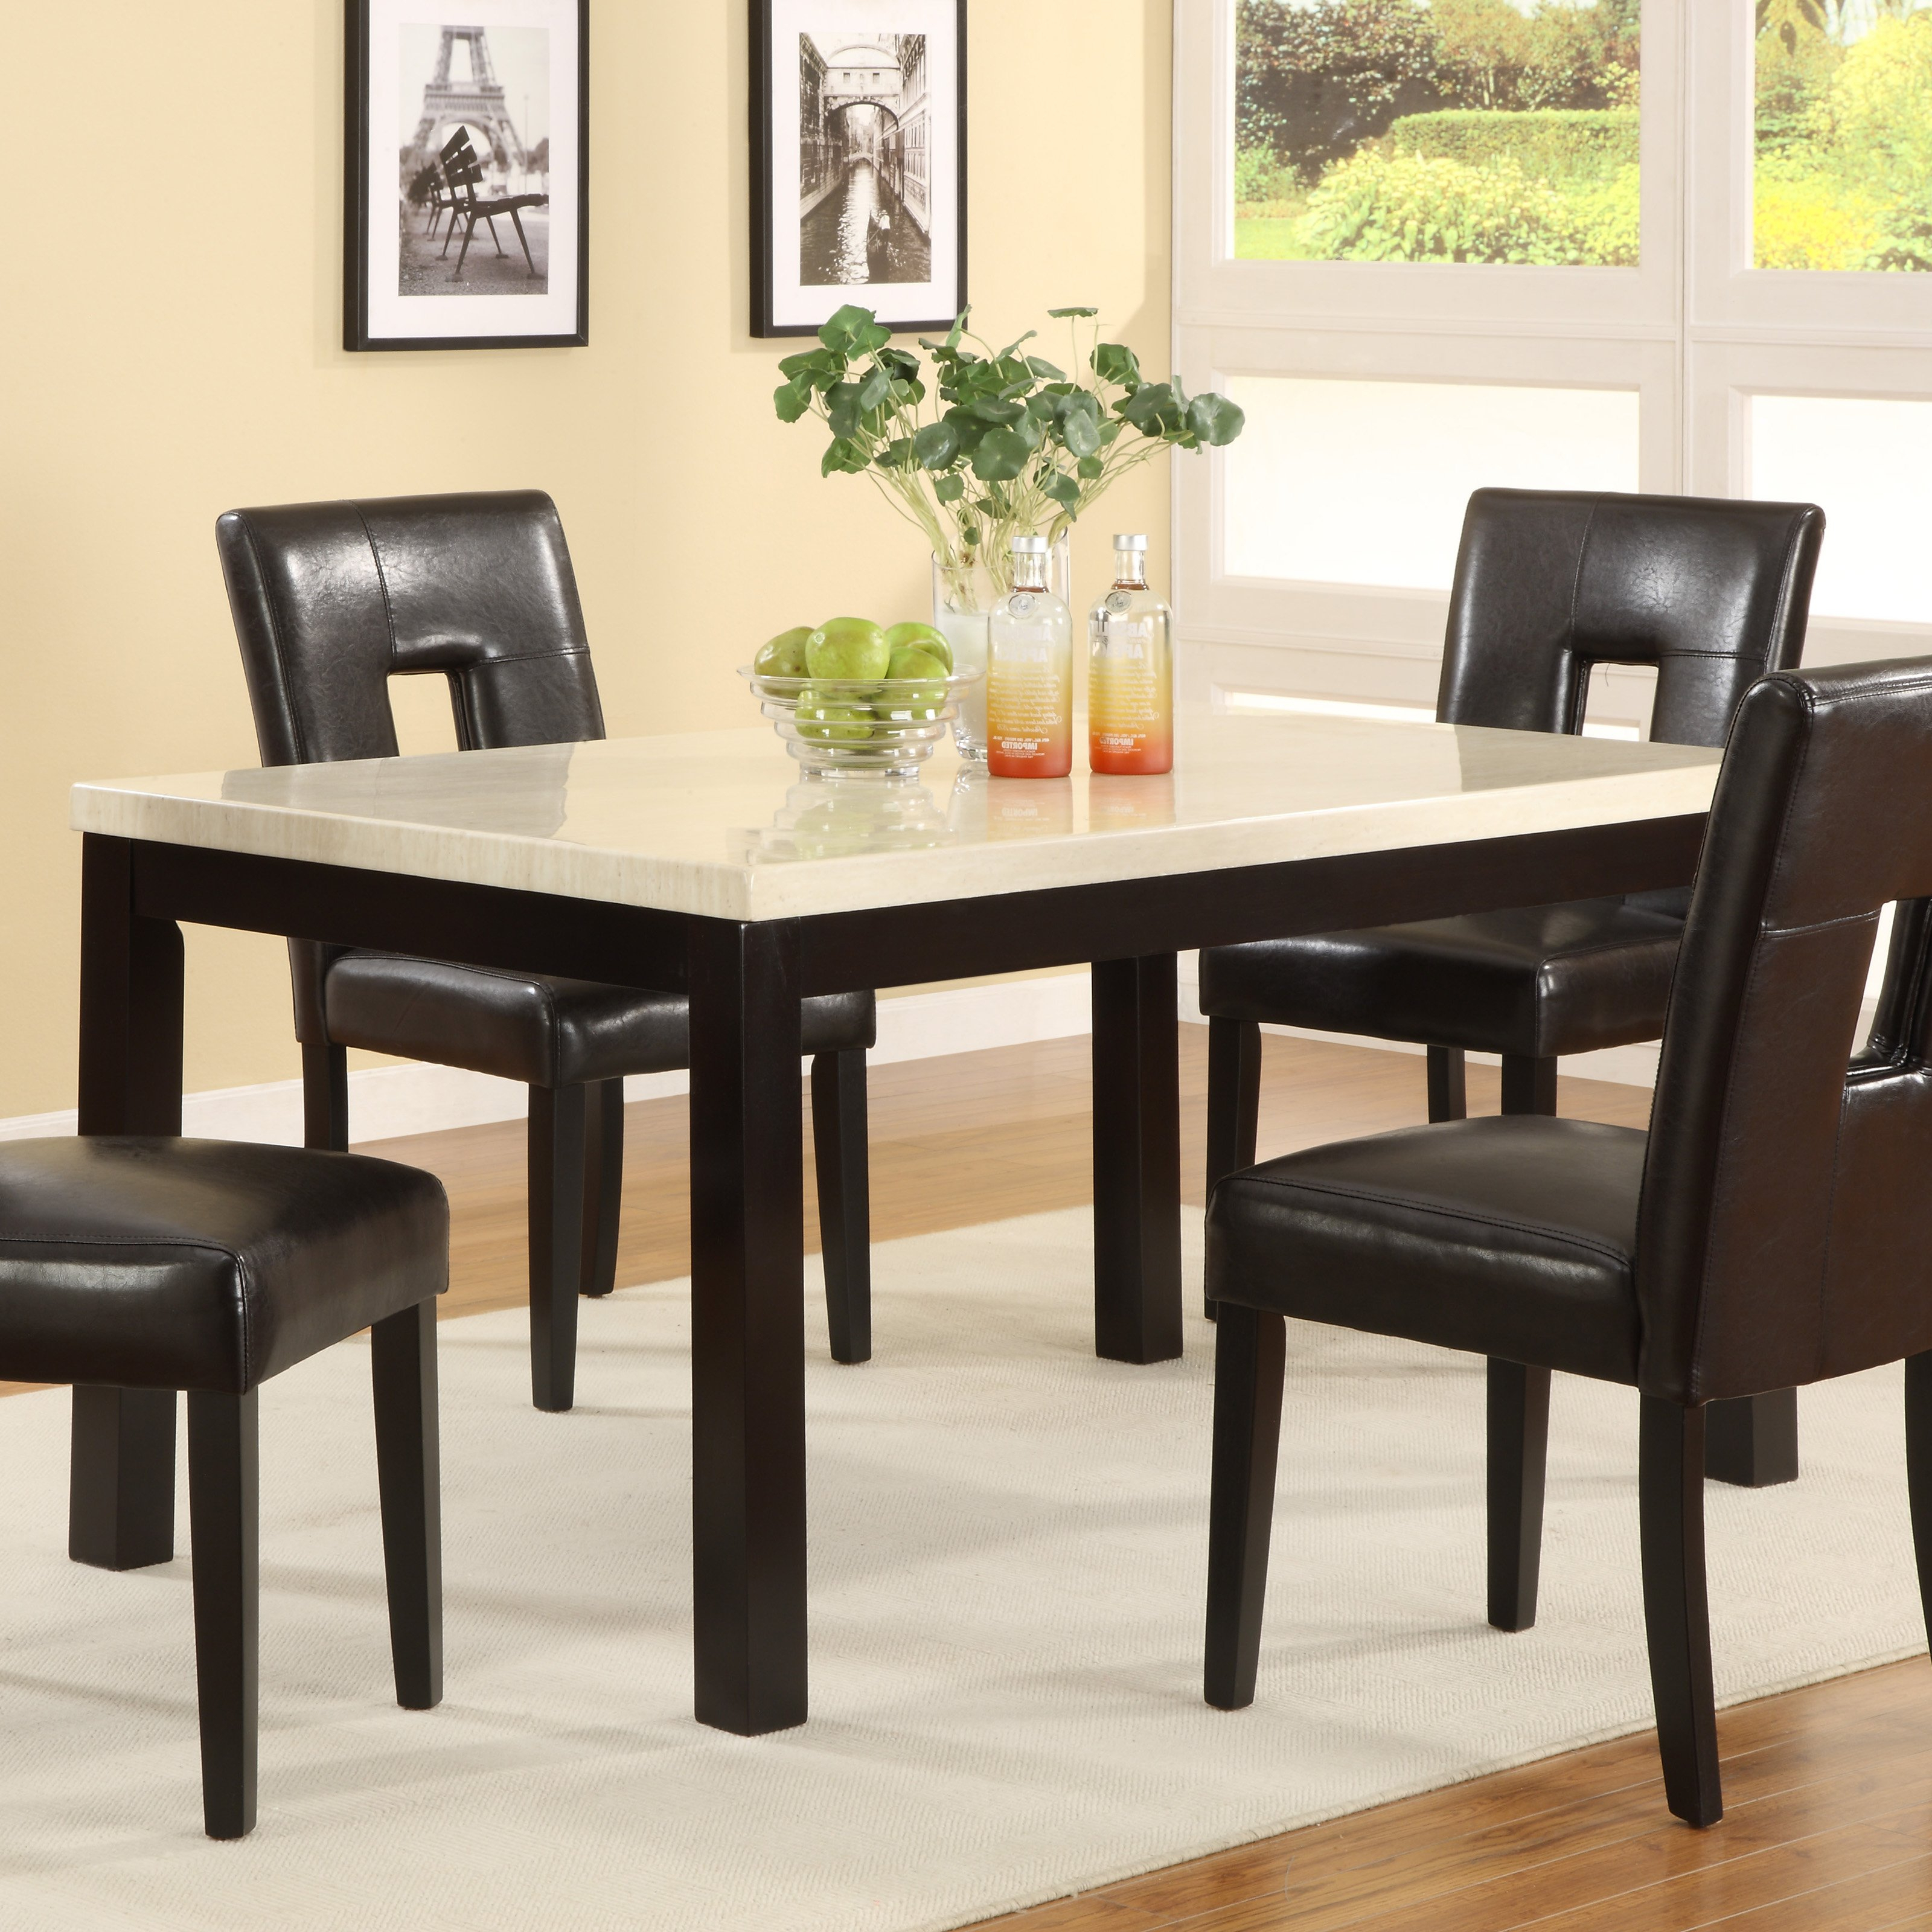 Rossiter 3 Piece Dining Sets in Favorite Metropolitan 3 Piece Dining Set, Multiple Finishes - Walmart